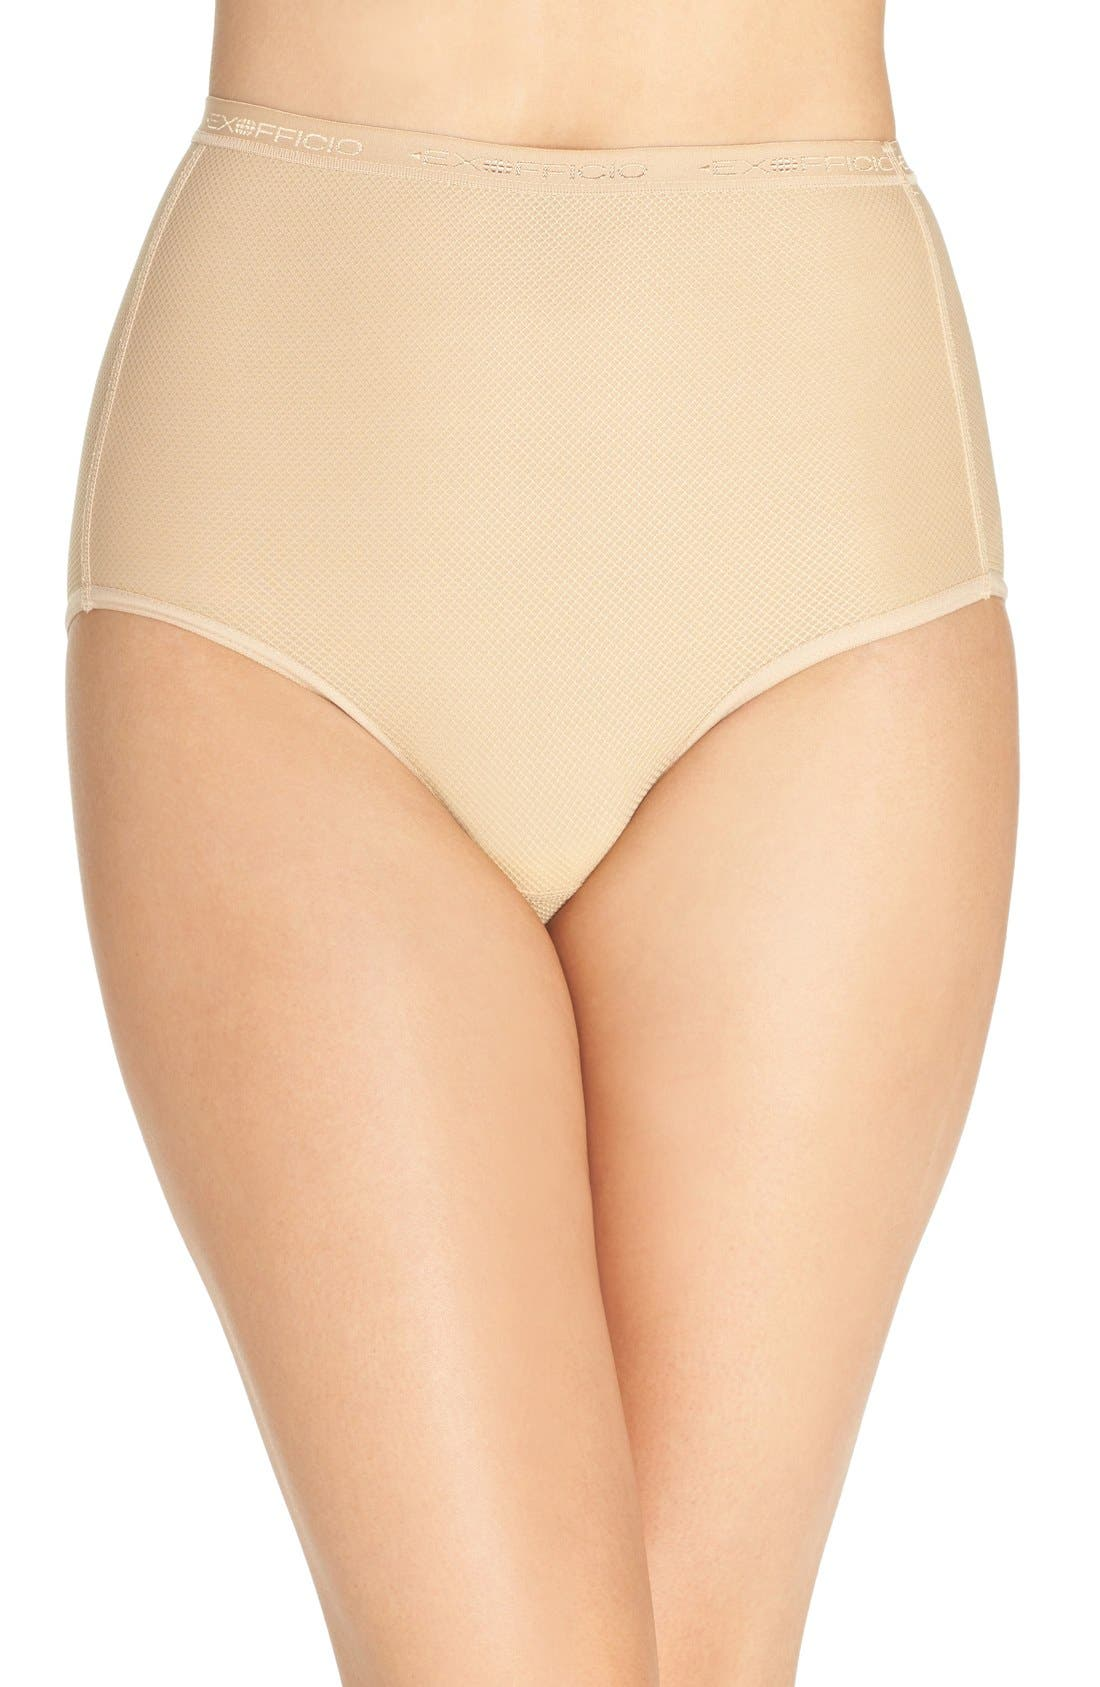 Give-N-Go<sup>®</sup> High Waist Sport Briefs,                         Main,                         color, Nude